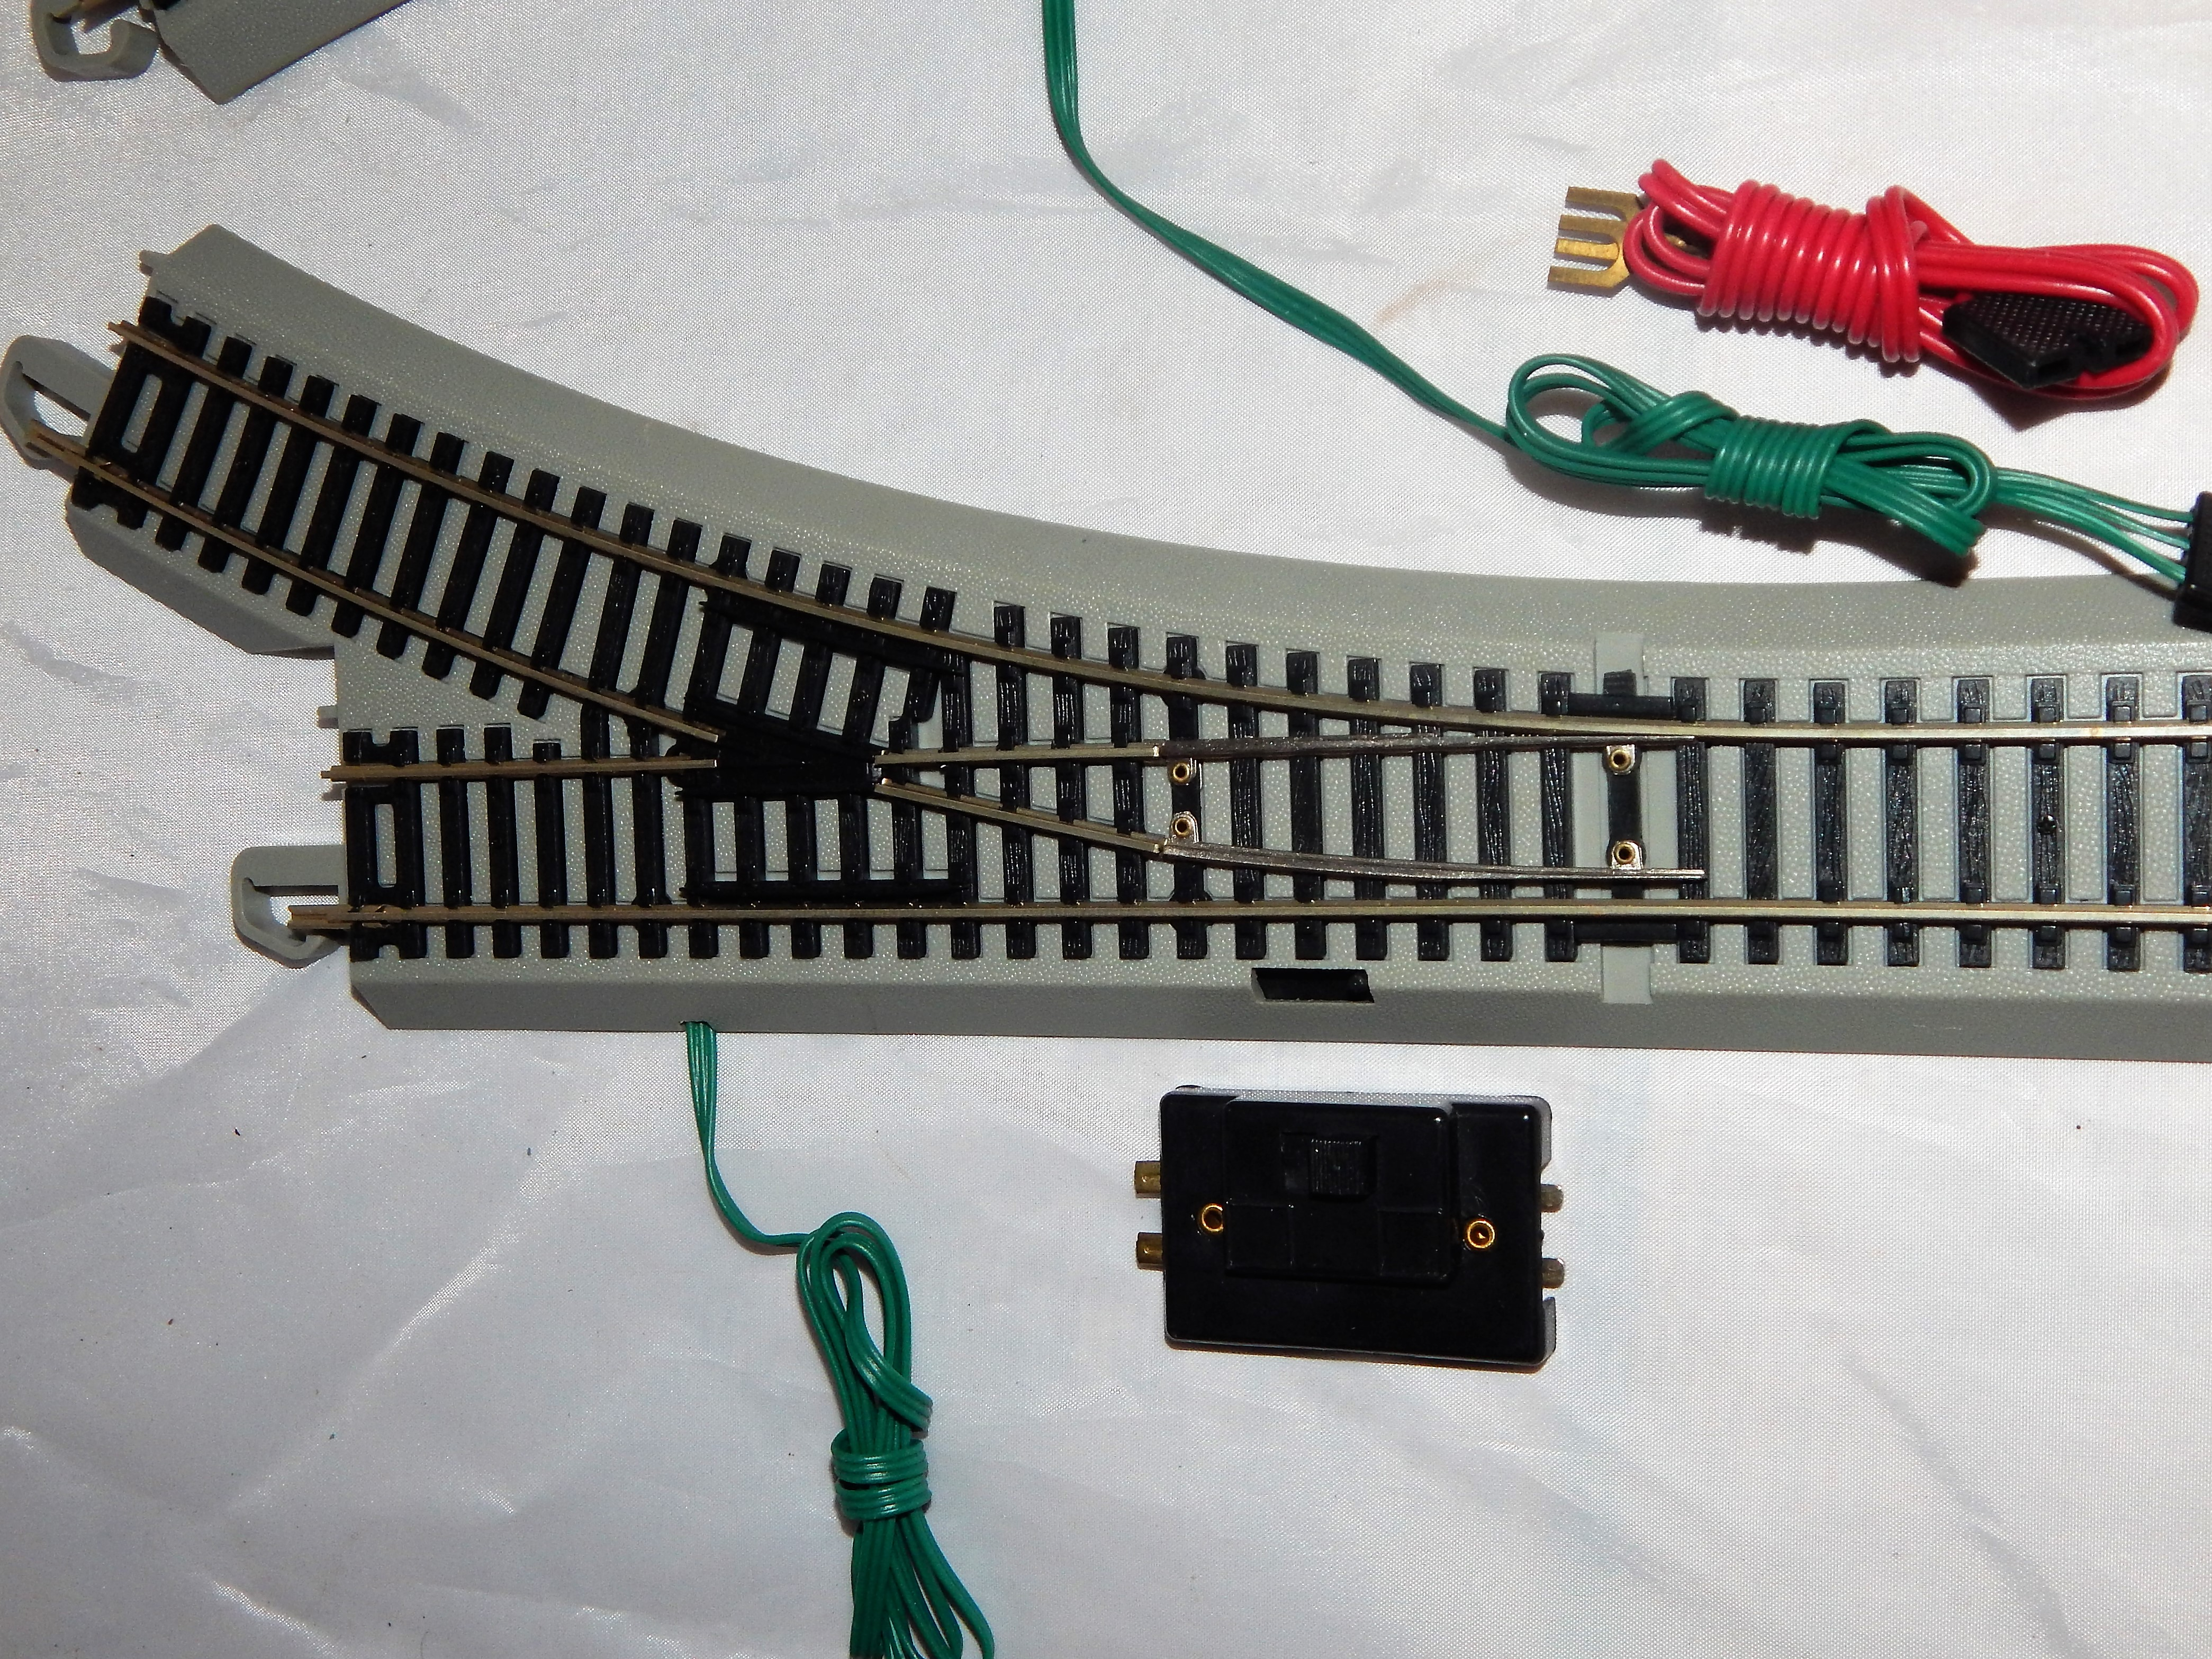 Buy Bachmann Ho 44561 44562 Pair Remote Turnout Nickle Silver Gray Switch Track Wiring Roadbed Ez